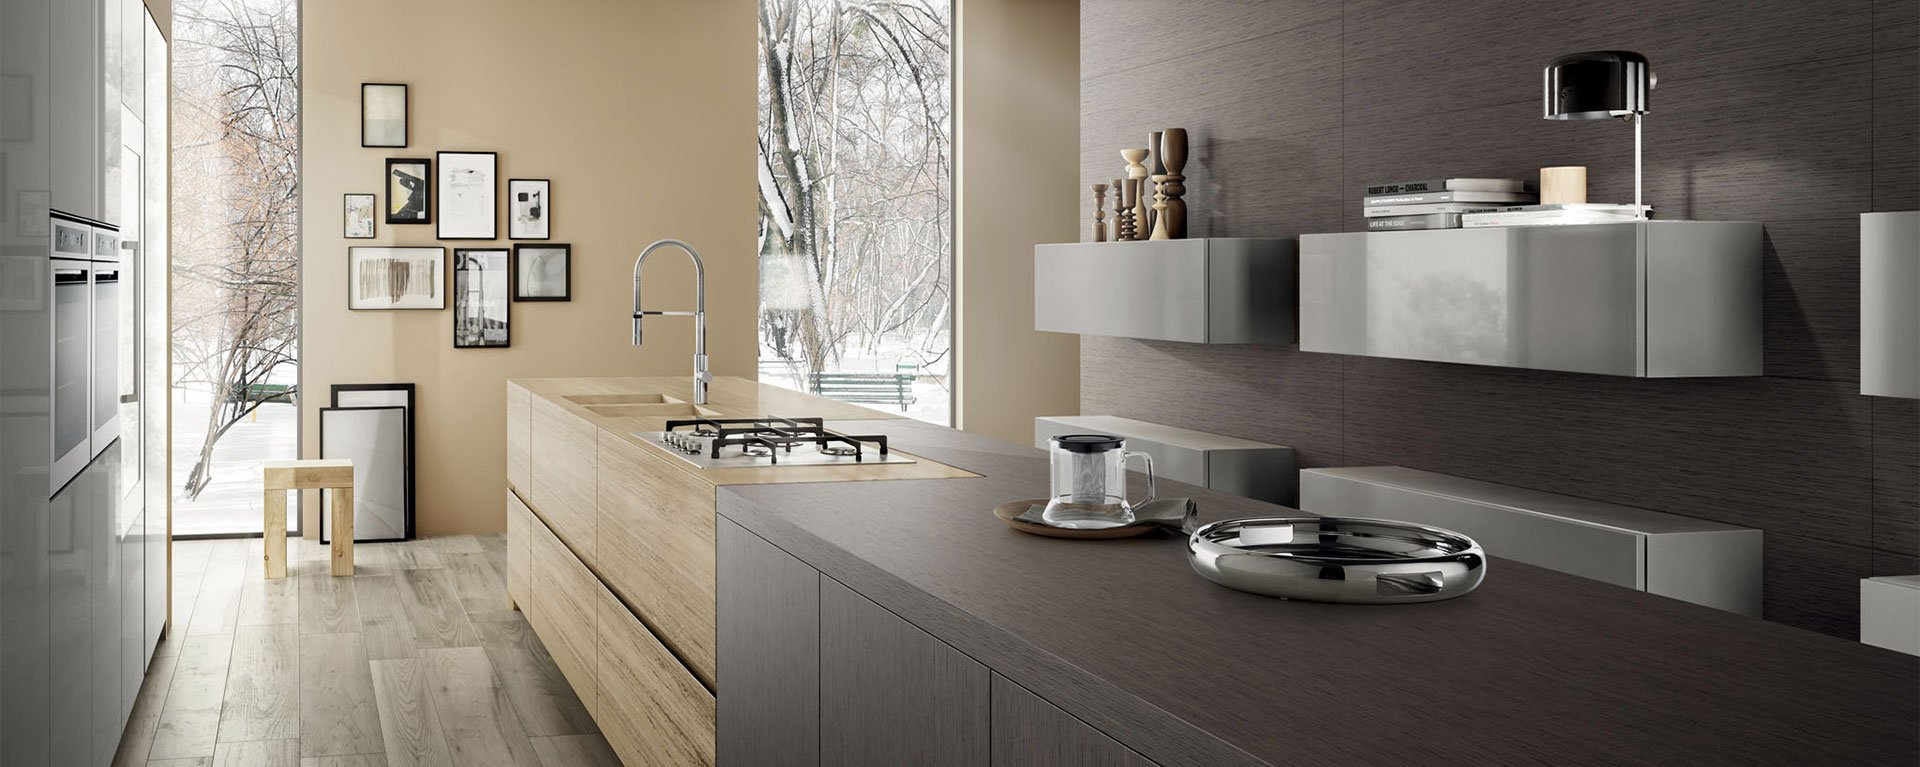 Dolce Vita Kitchen Bathroom Designs Contemporary Modern Classical